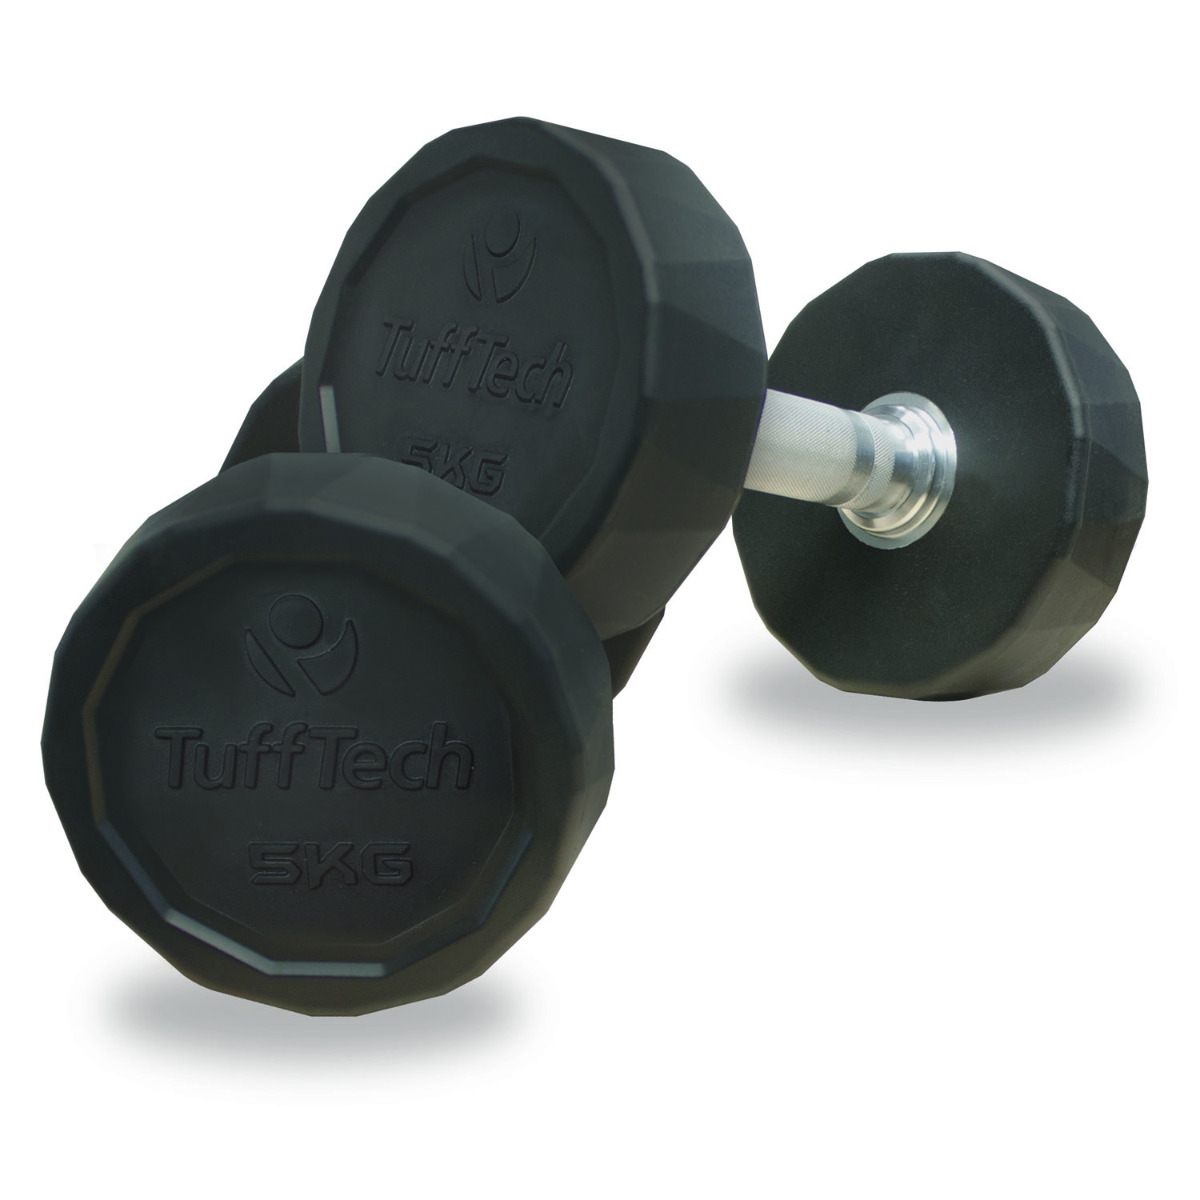 Pair of 15kg Rubber Dumbbells